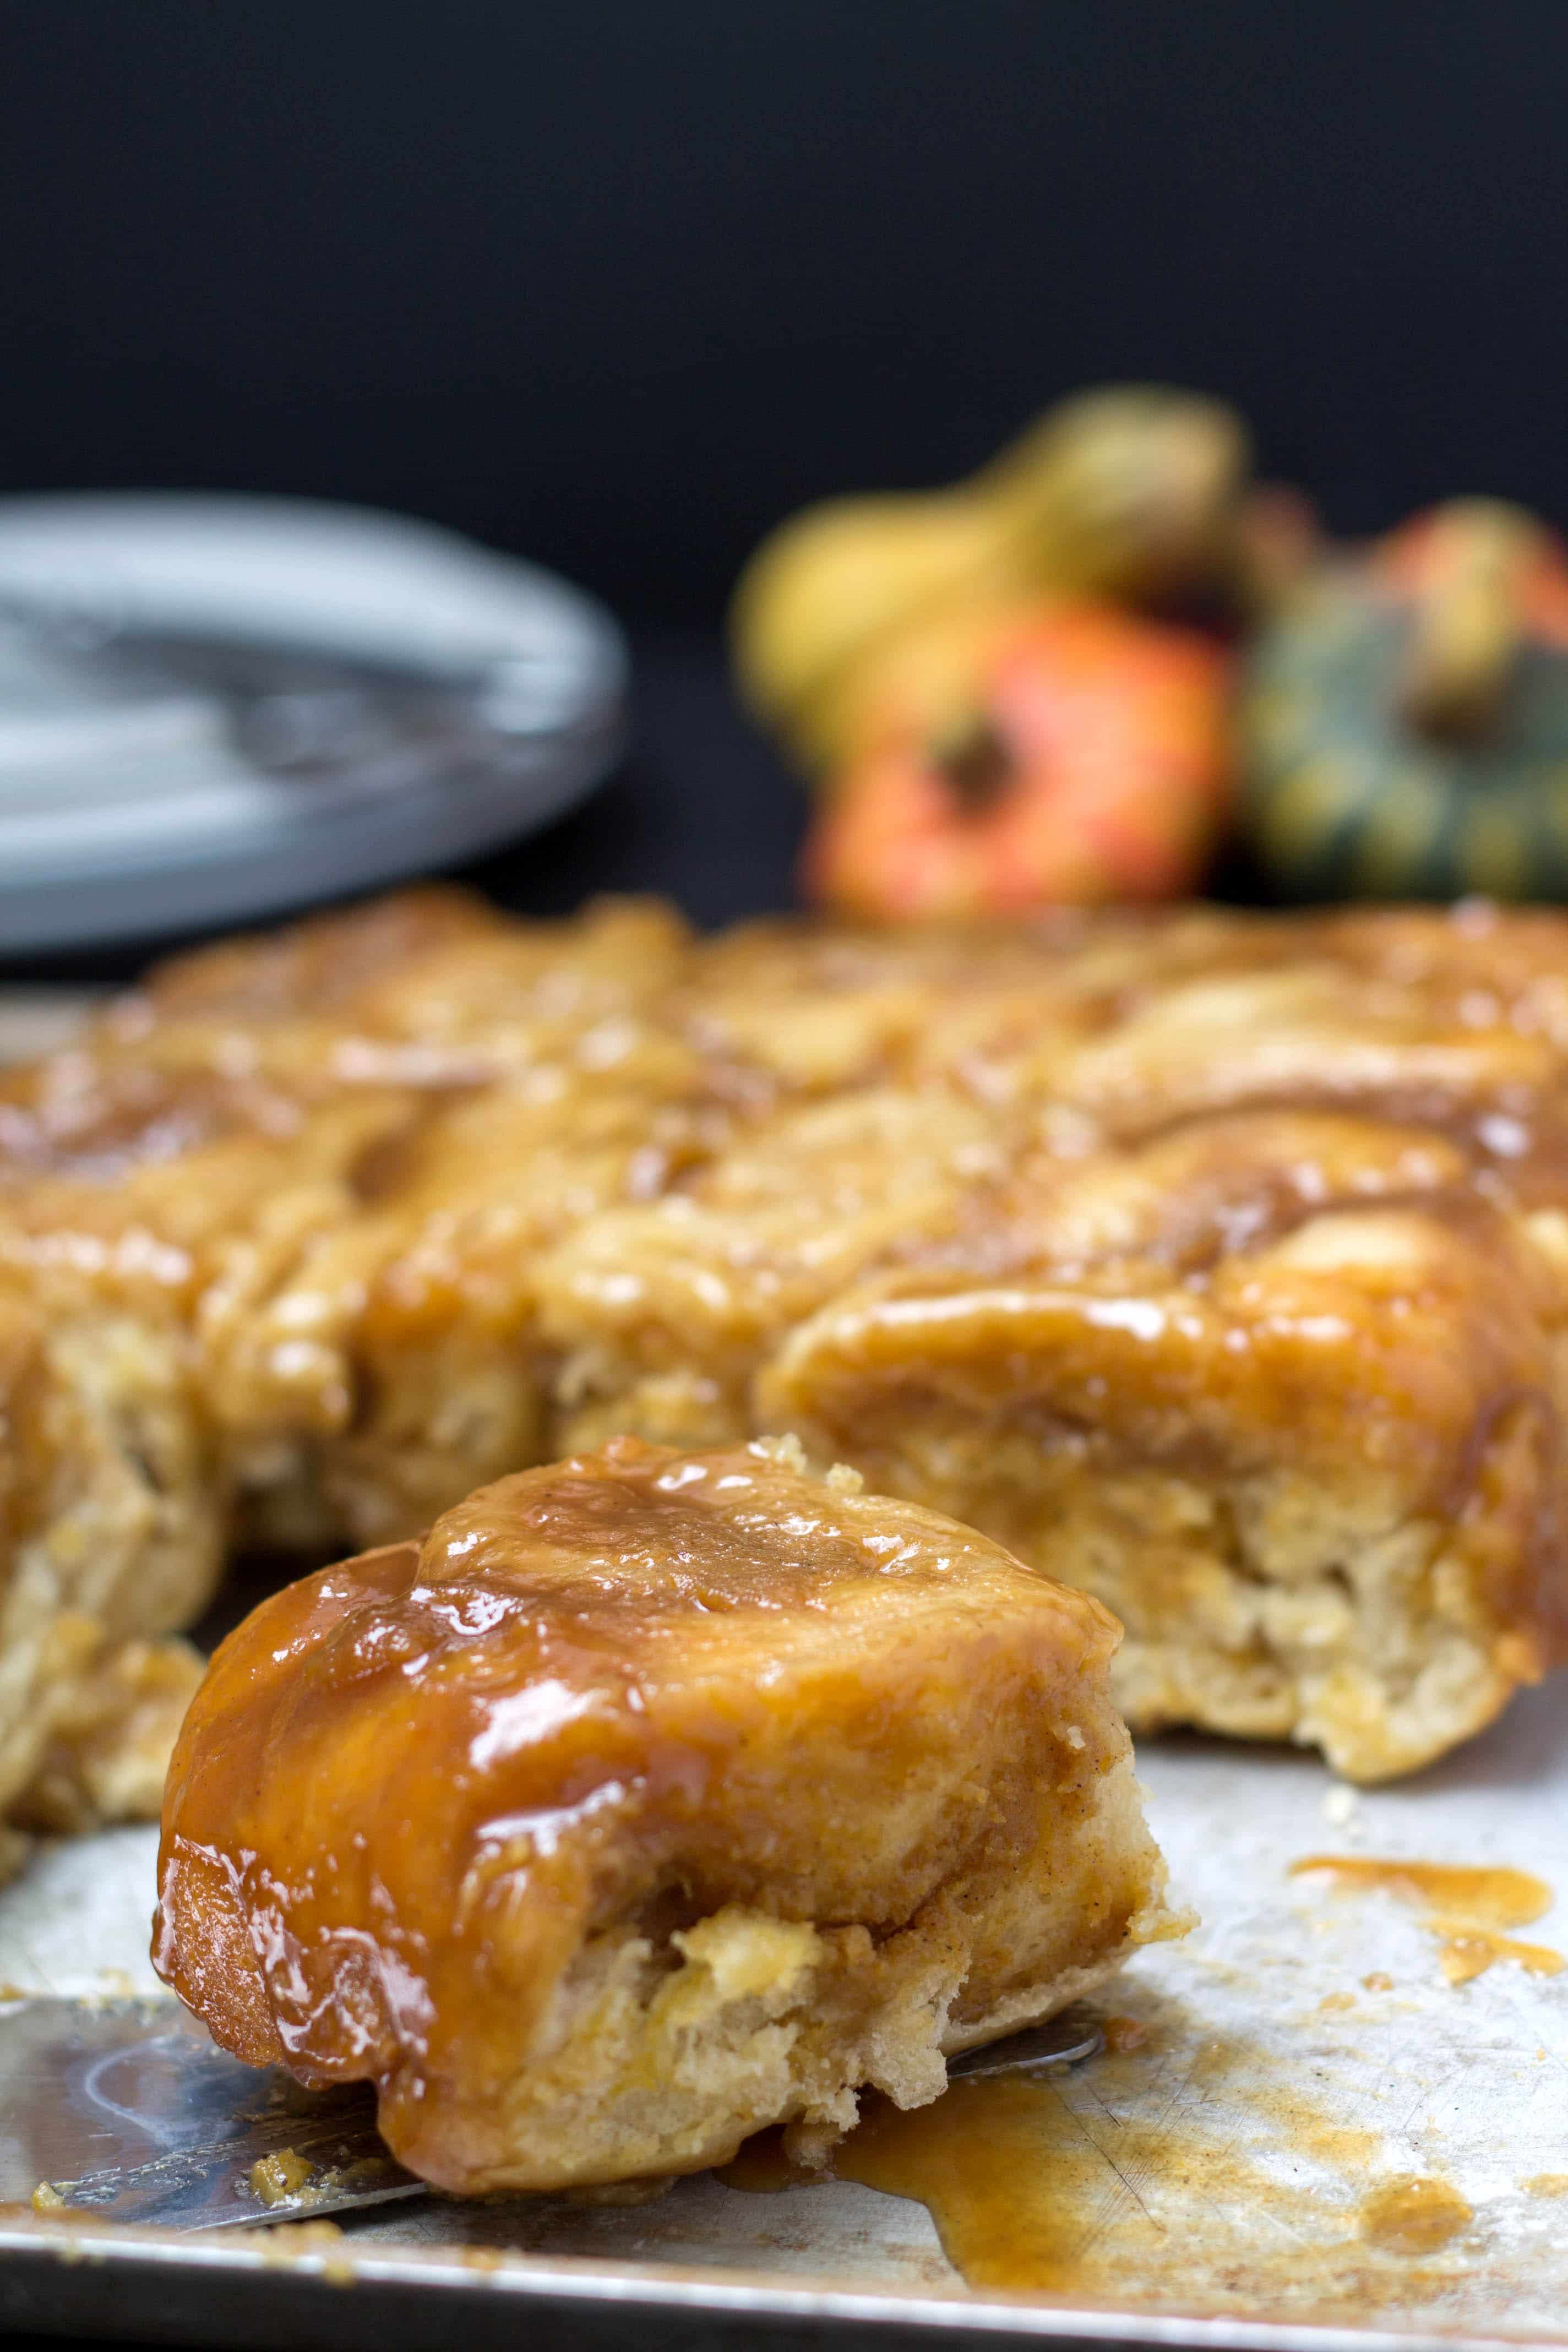 Pumpkin Pie Sticky Buns - Erren's Kitchen - These, soft, gooey buns are filled with a pumpkin pie filling and coated with a buttery sweet sauce that's to die for!